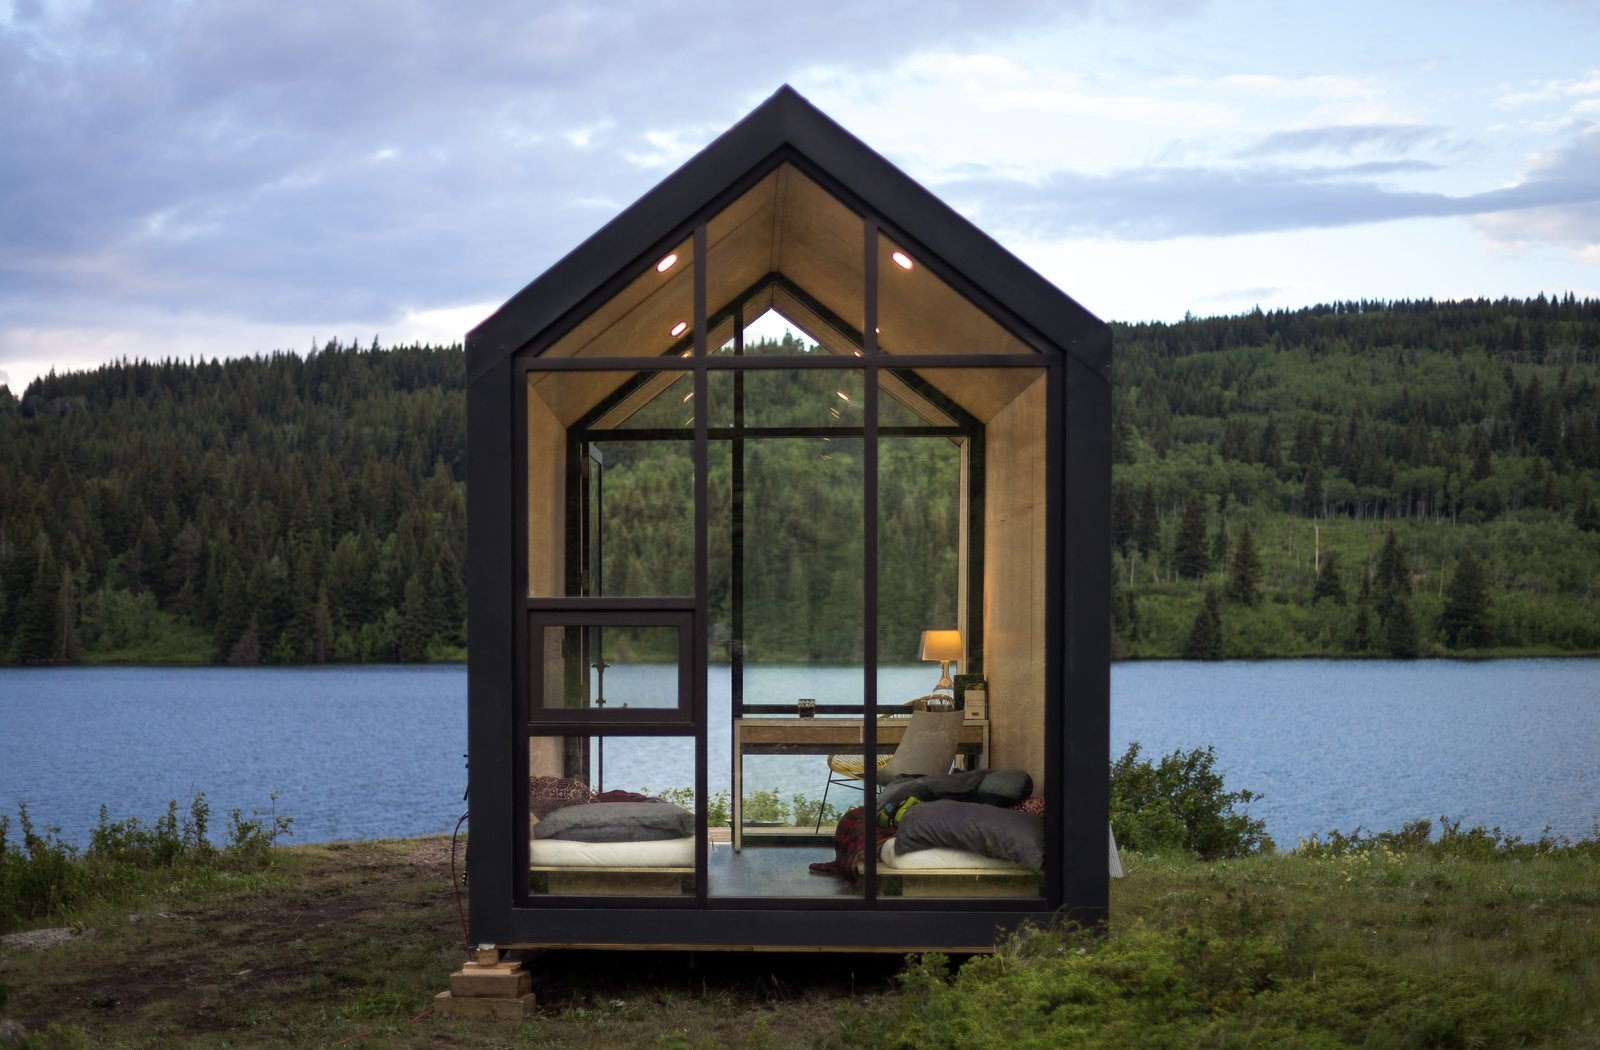 Drop this dreamy prefab cabin wherever you like